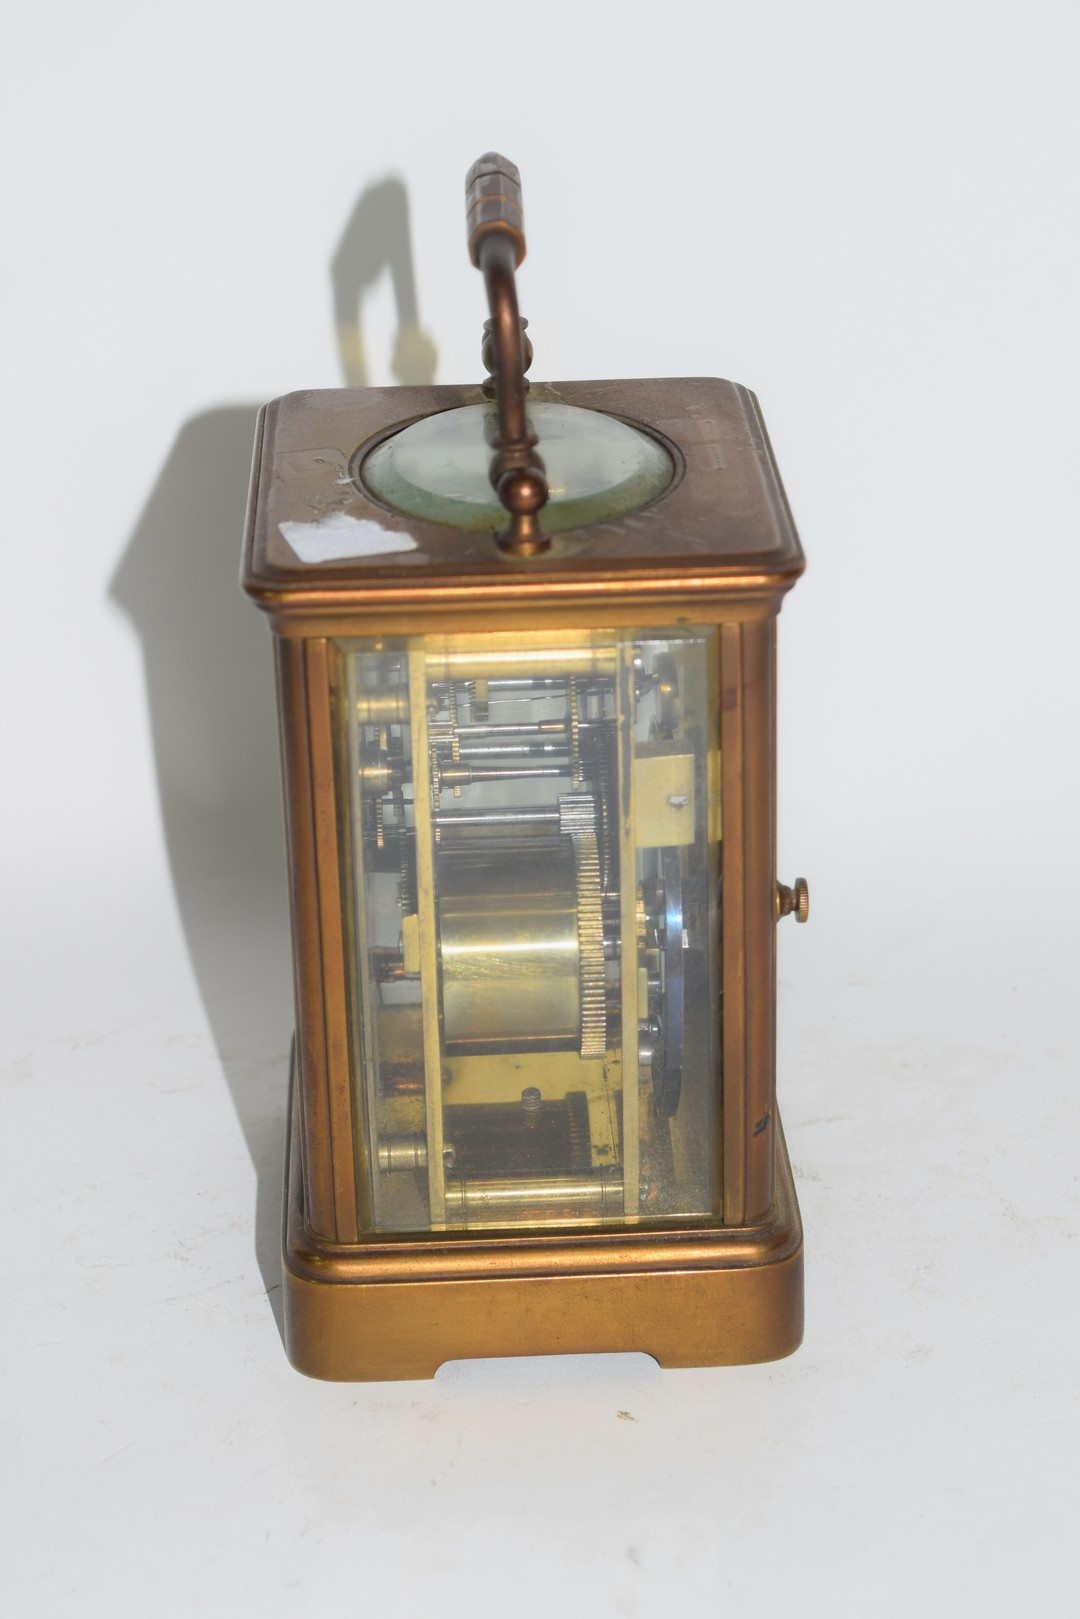 Brass carriage clock - Image 2 of 5